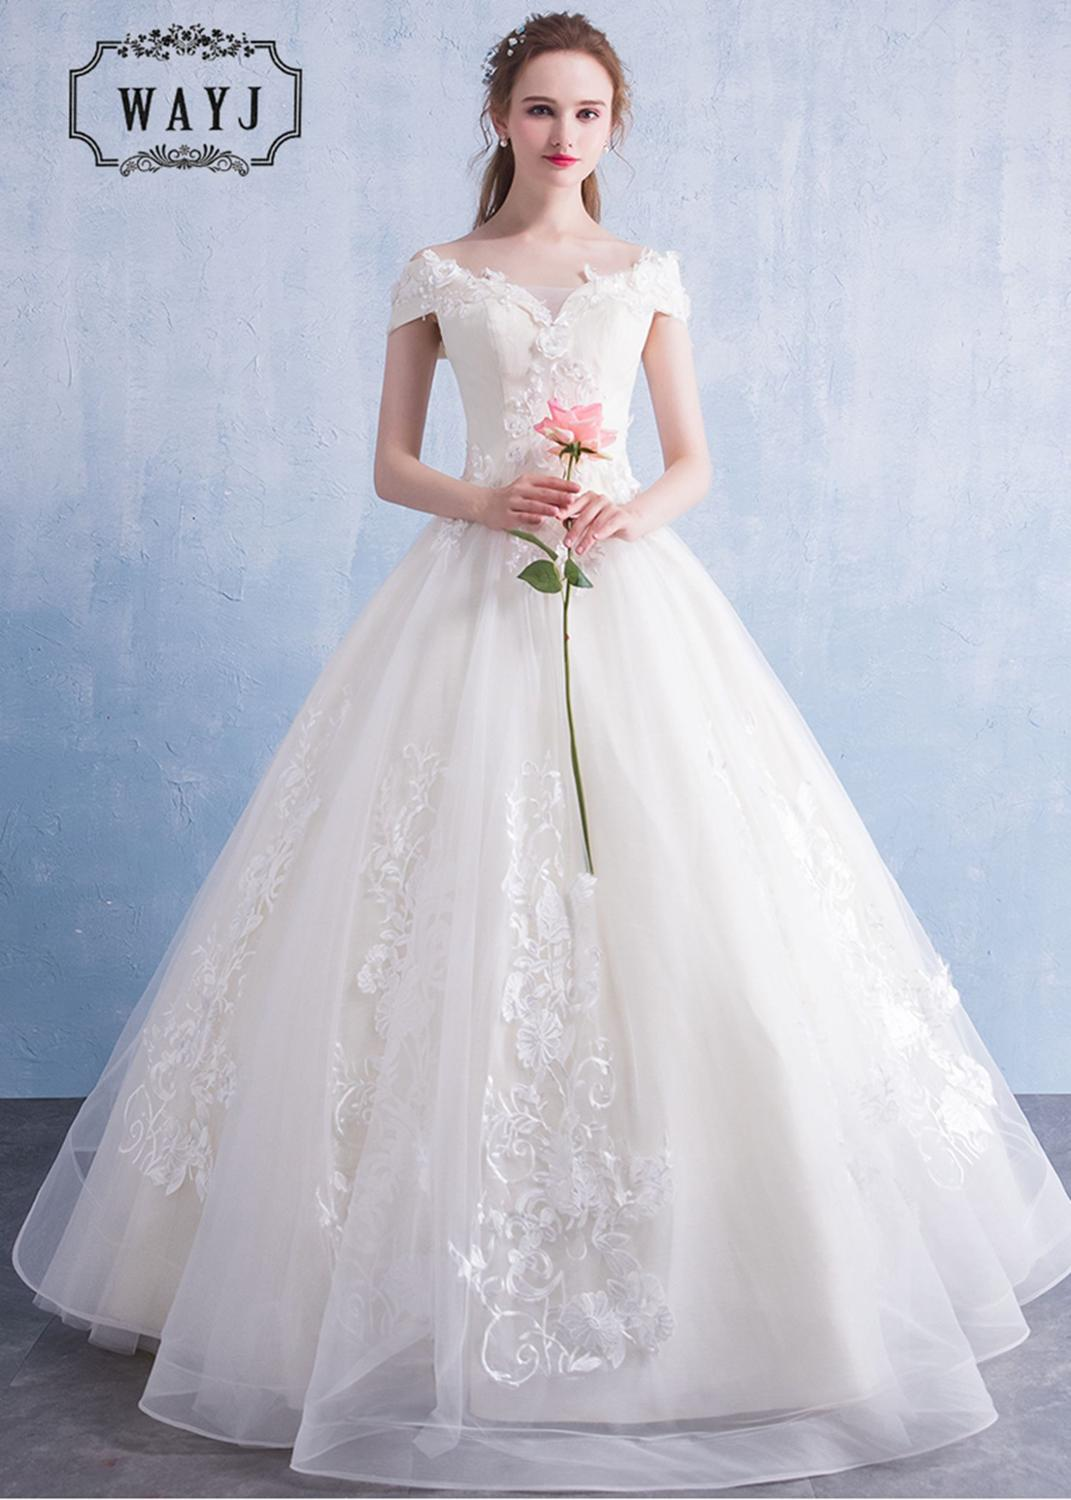 New Design Sweetheart Princess Wedding Dresses 2020 Elegant Beading Flowers Embroidery Wedding Gowns Custom Lace Up Robe Mariage